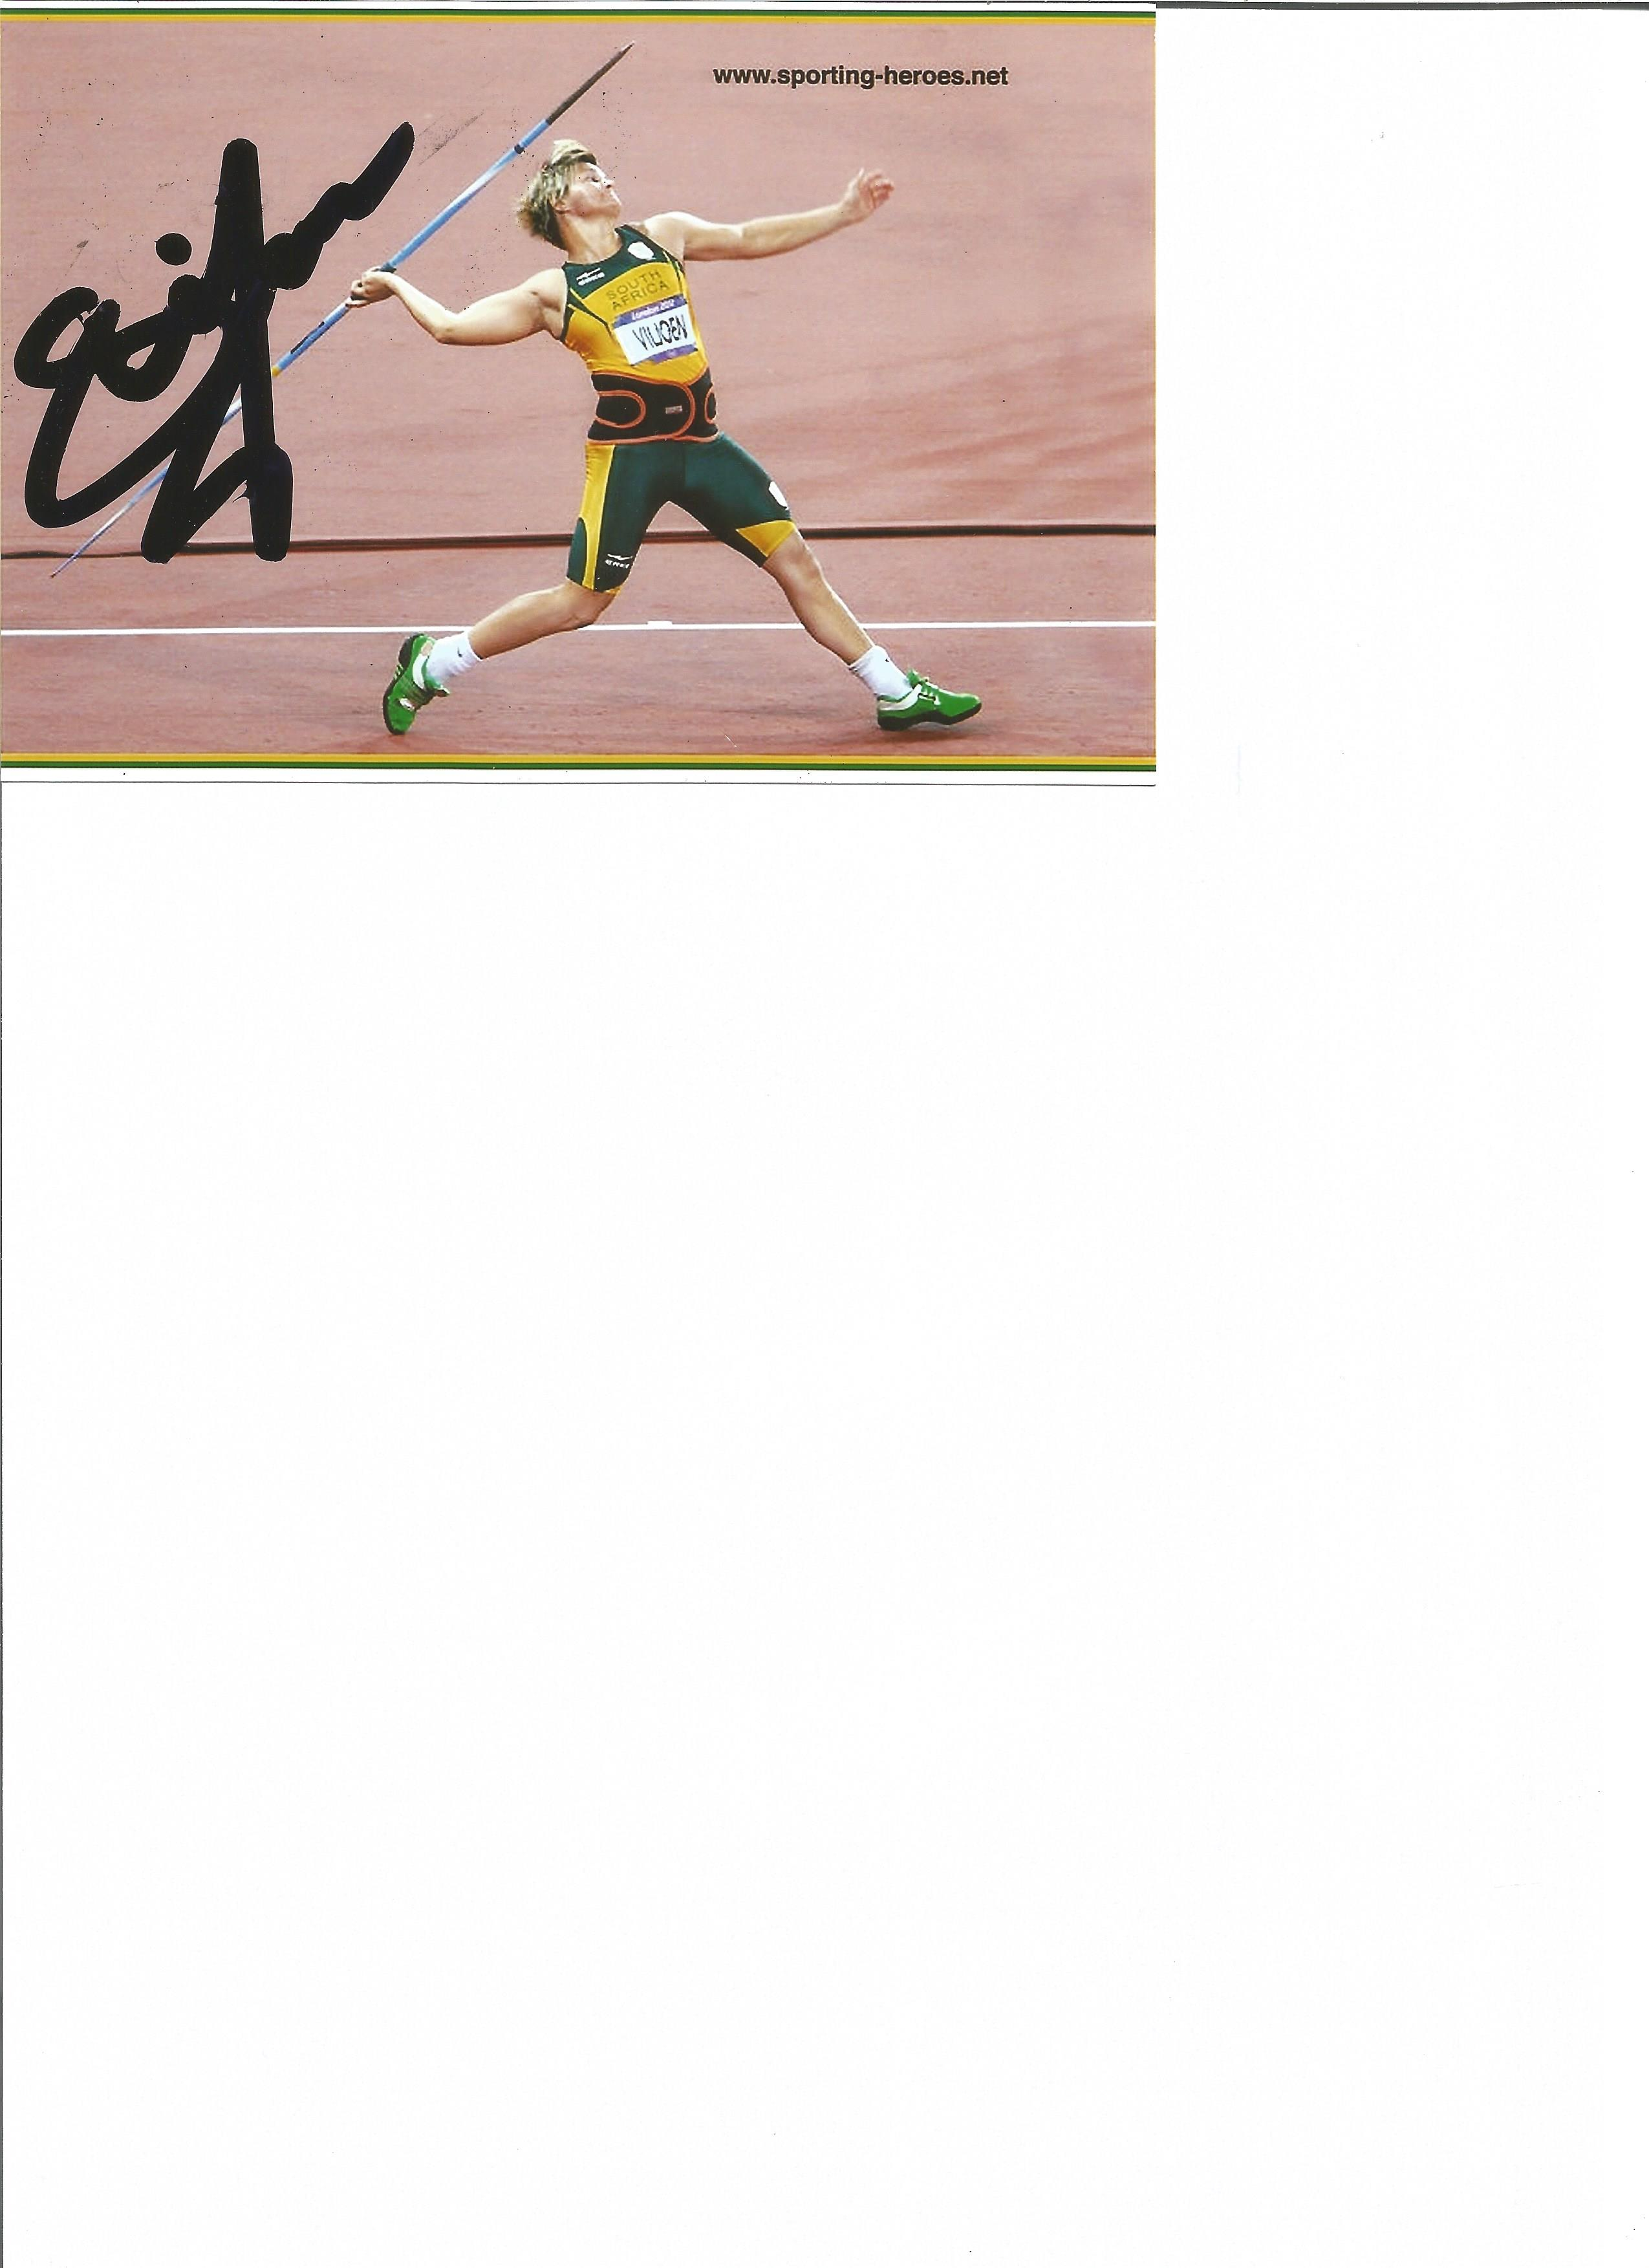 Lot 652 - Olympics Sunette Viljoen signed 6 x 4 inch colour photo for South Africa in the javelin event at the